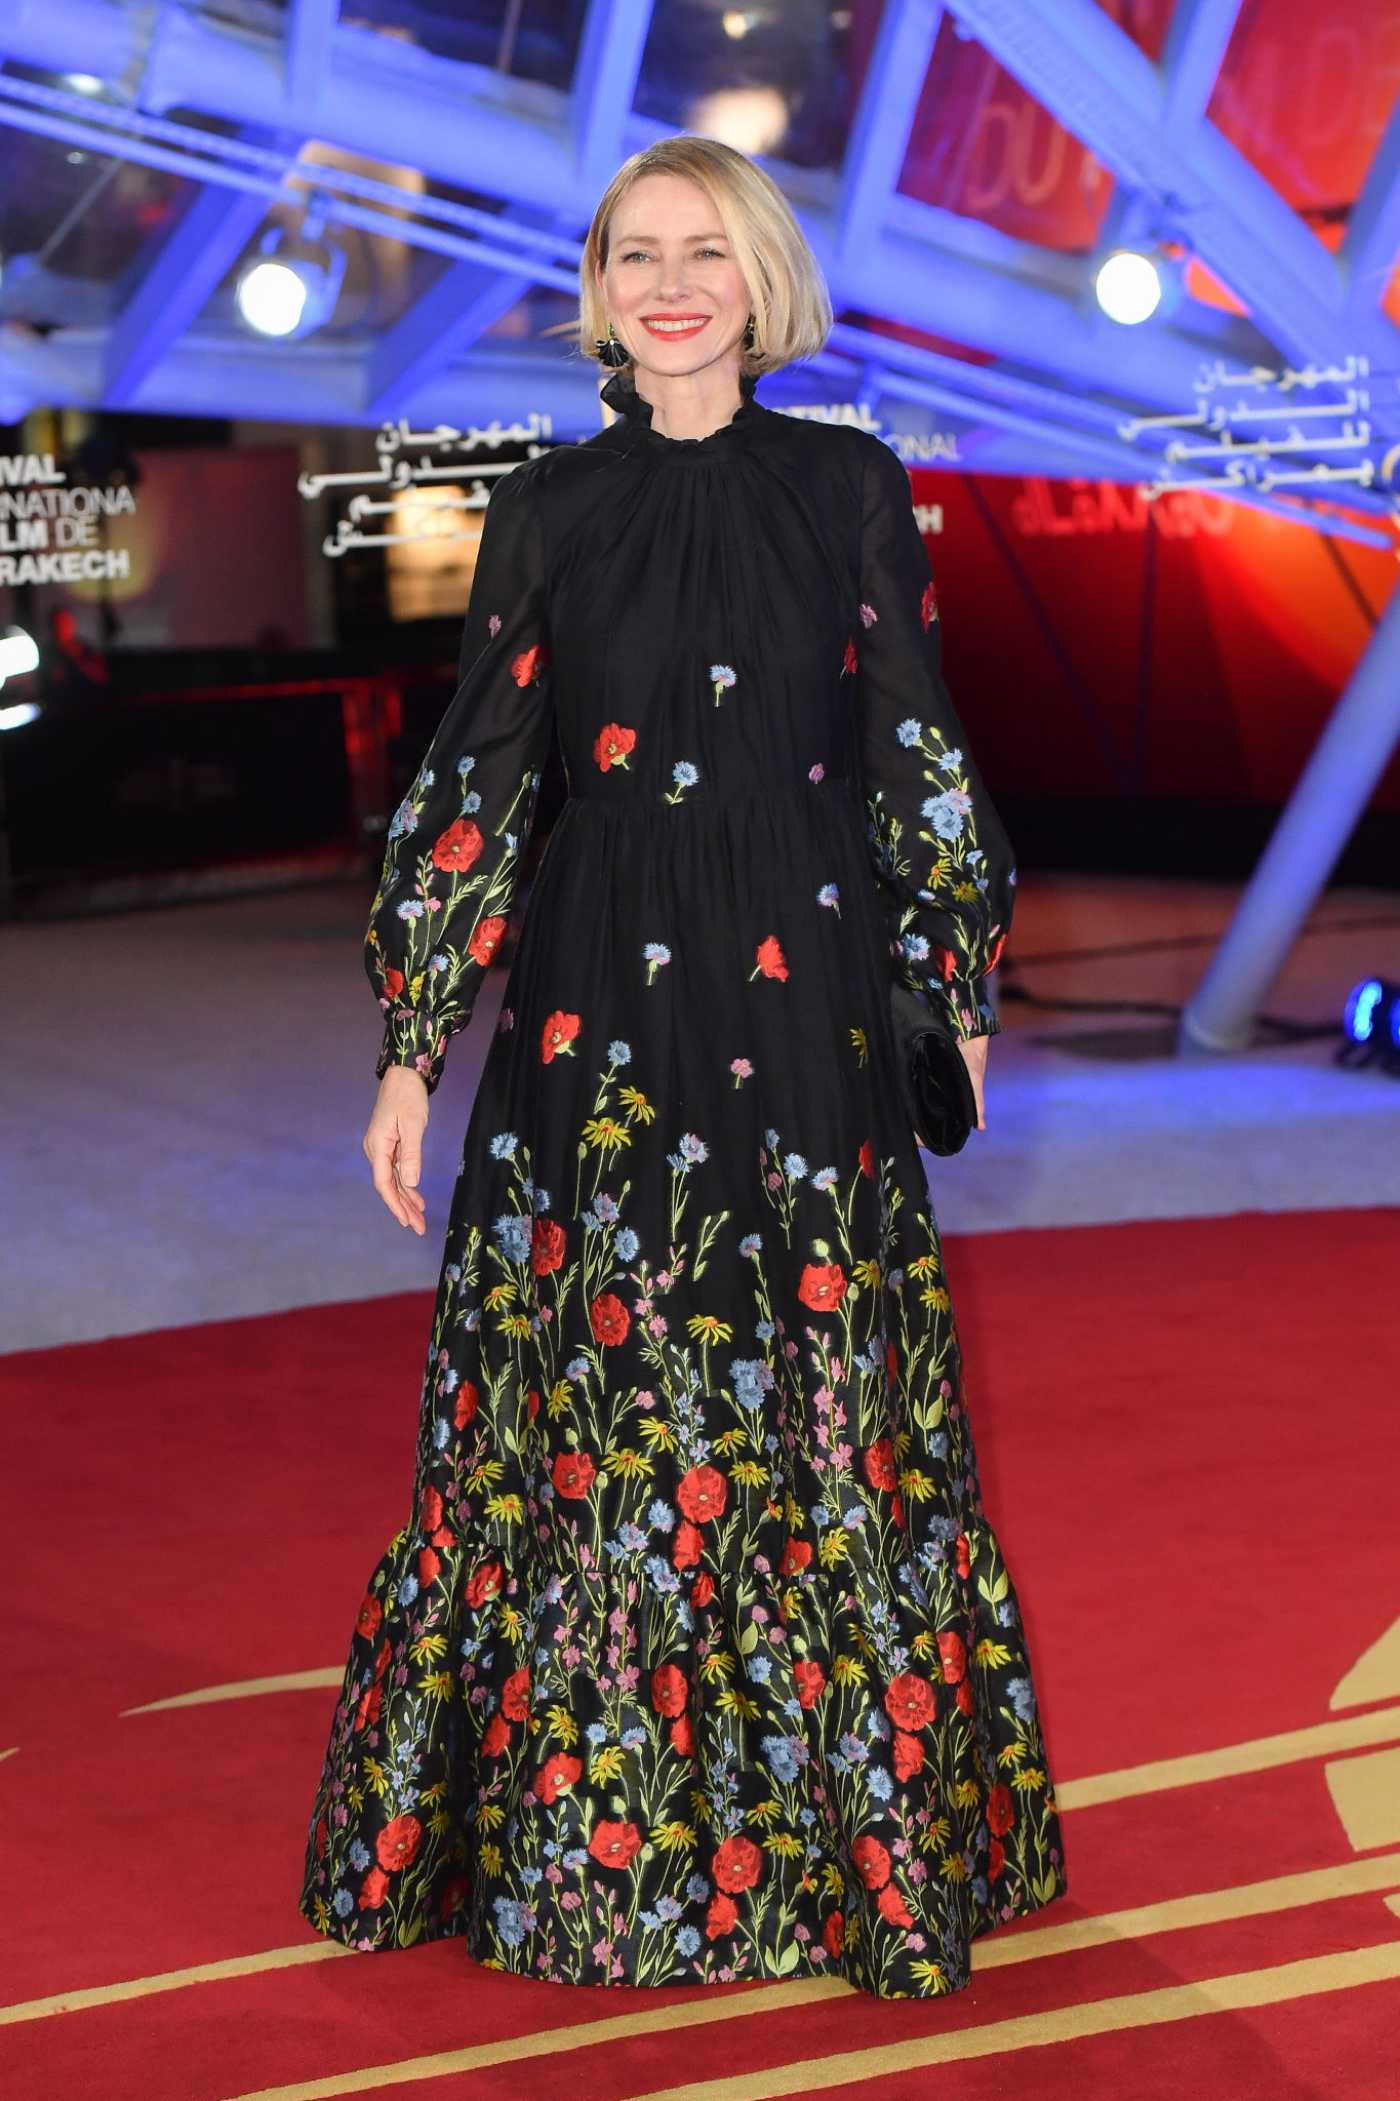 Naomi Watts Attends the 18th Marrakech International Film Festival Opening Ceremony in Marrakech 11/29/2019